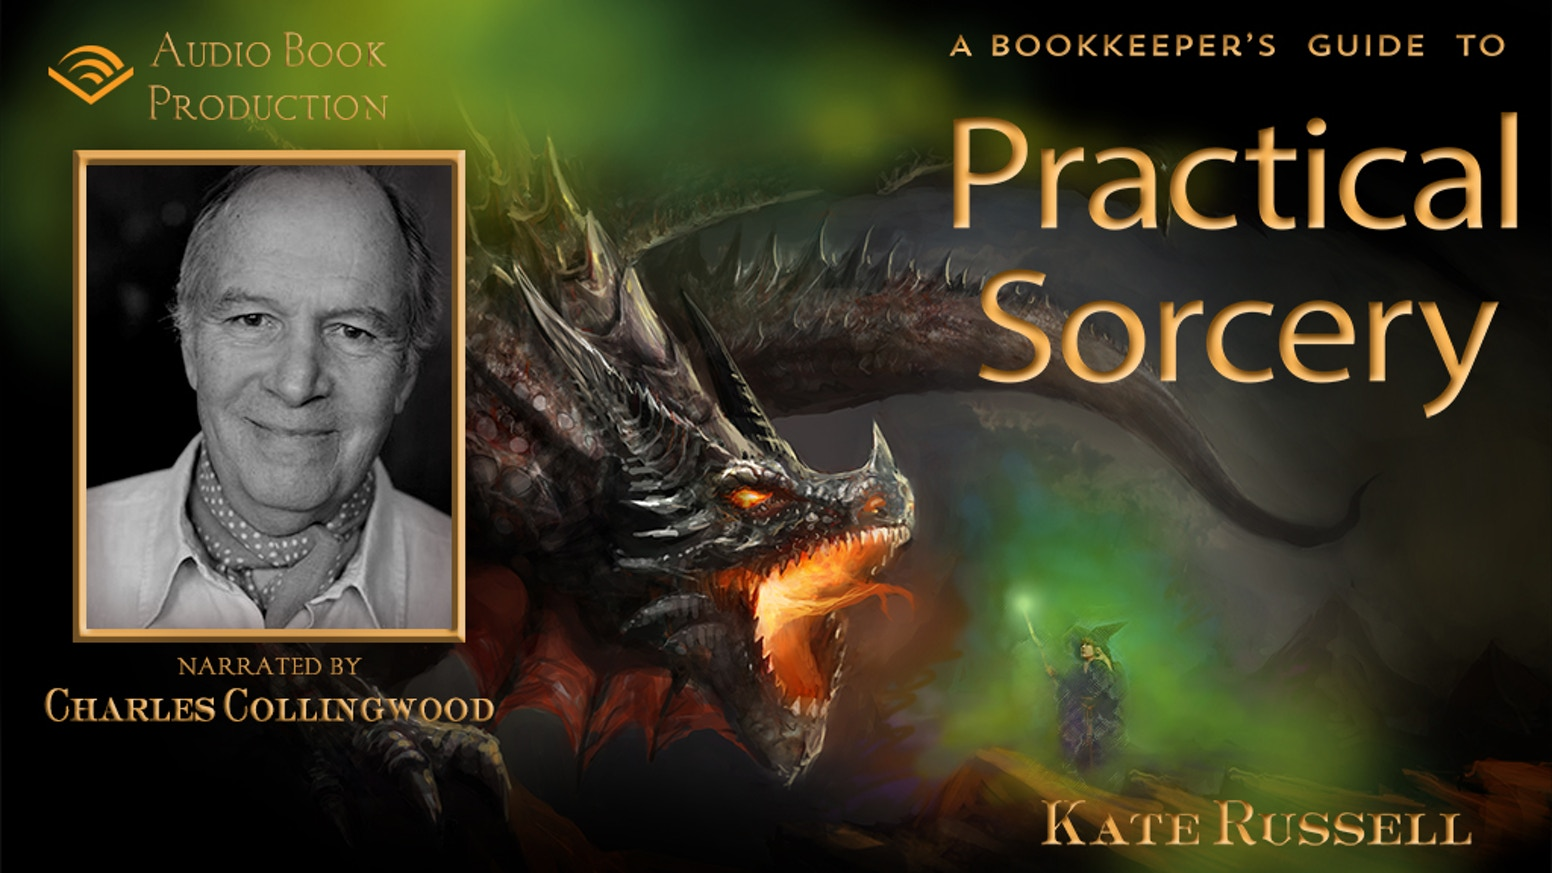 Help record a magical and humourous fantasy adventure about courage, passion and friendship, narrated by Charles Collingwood.